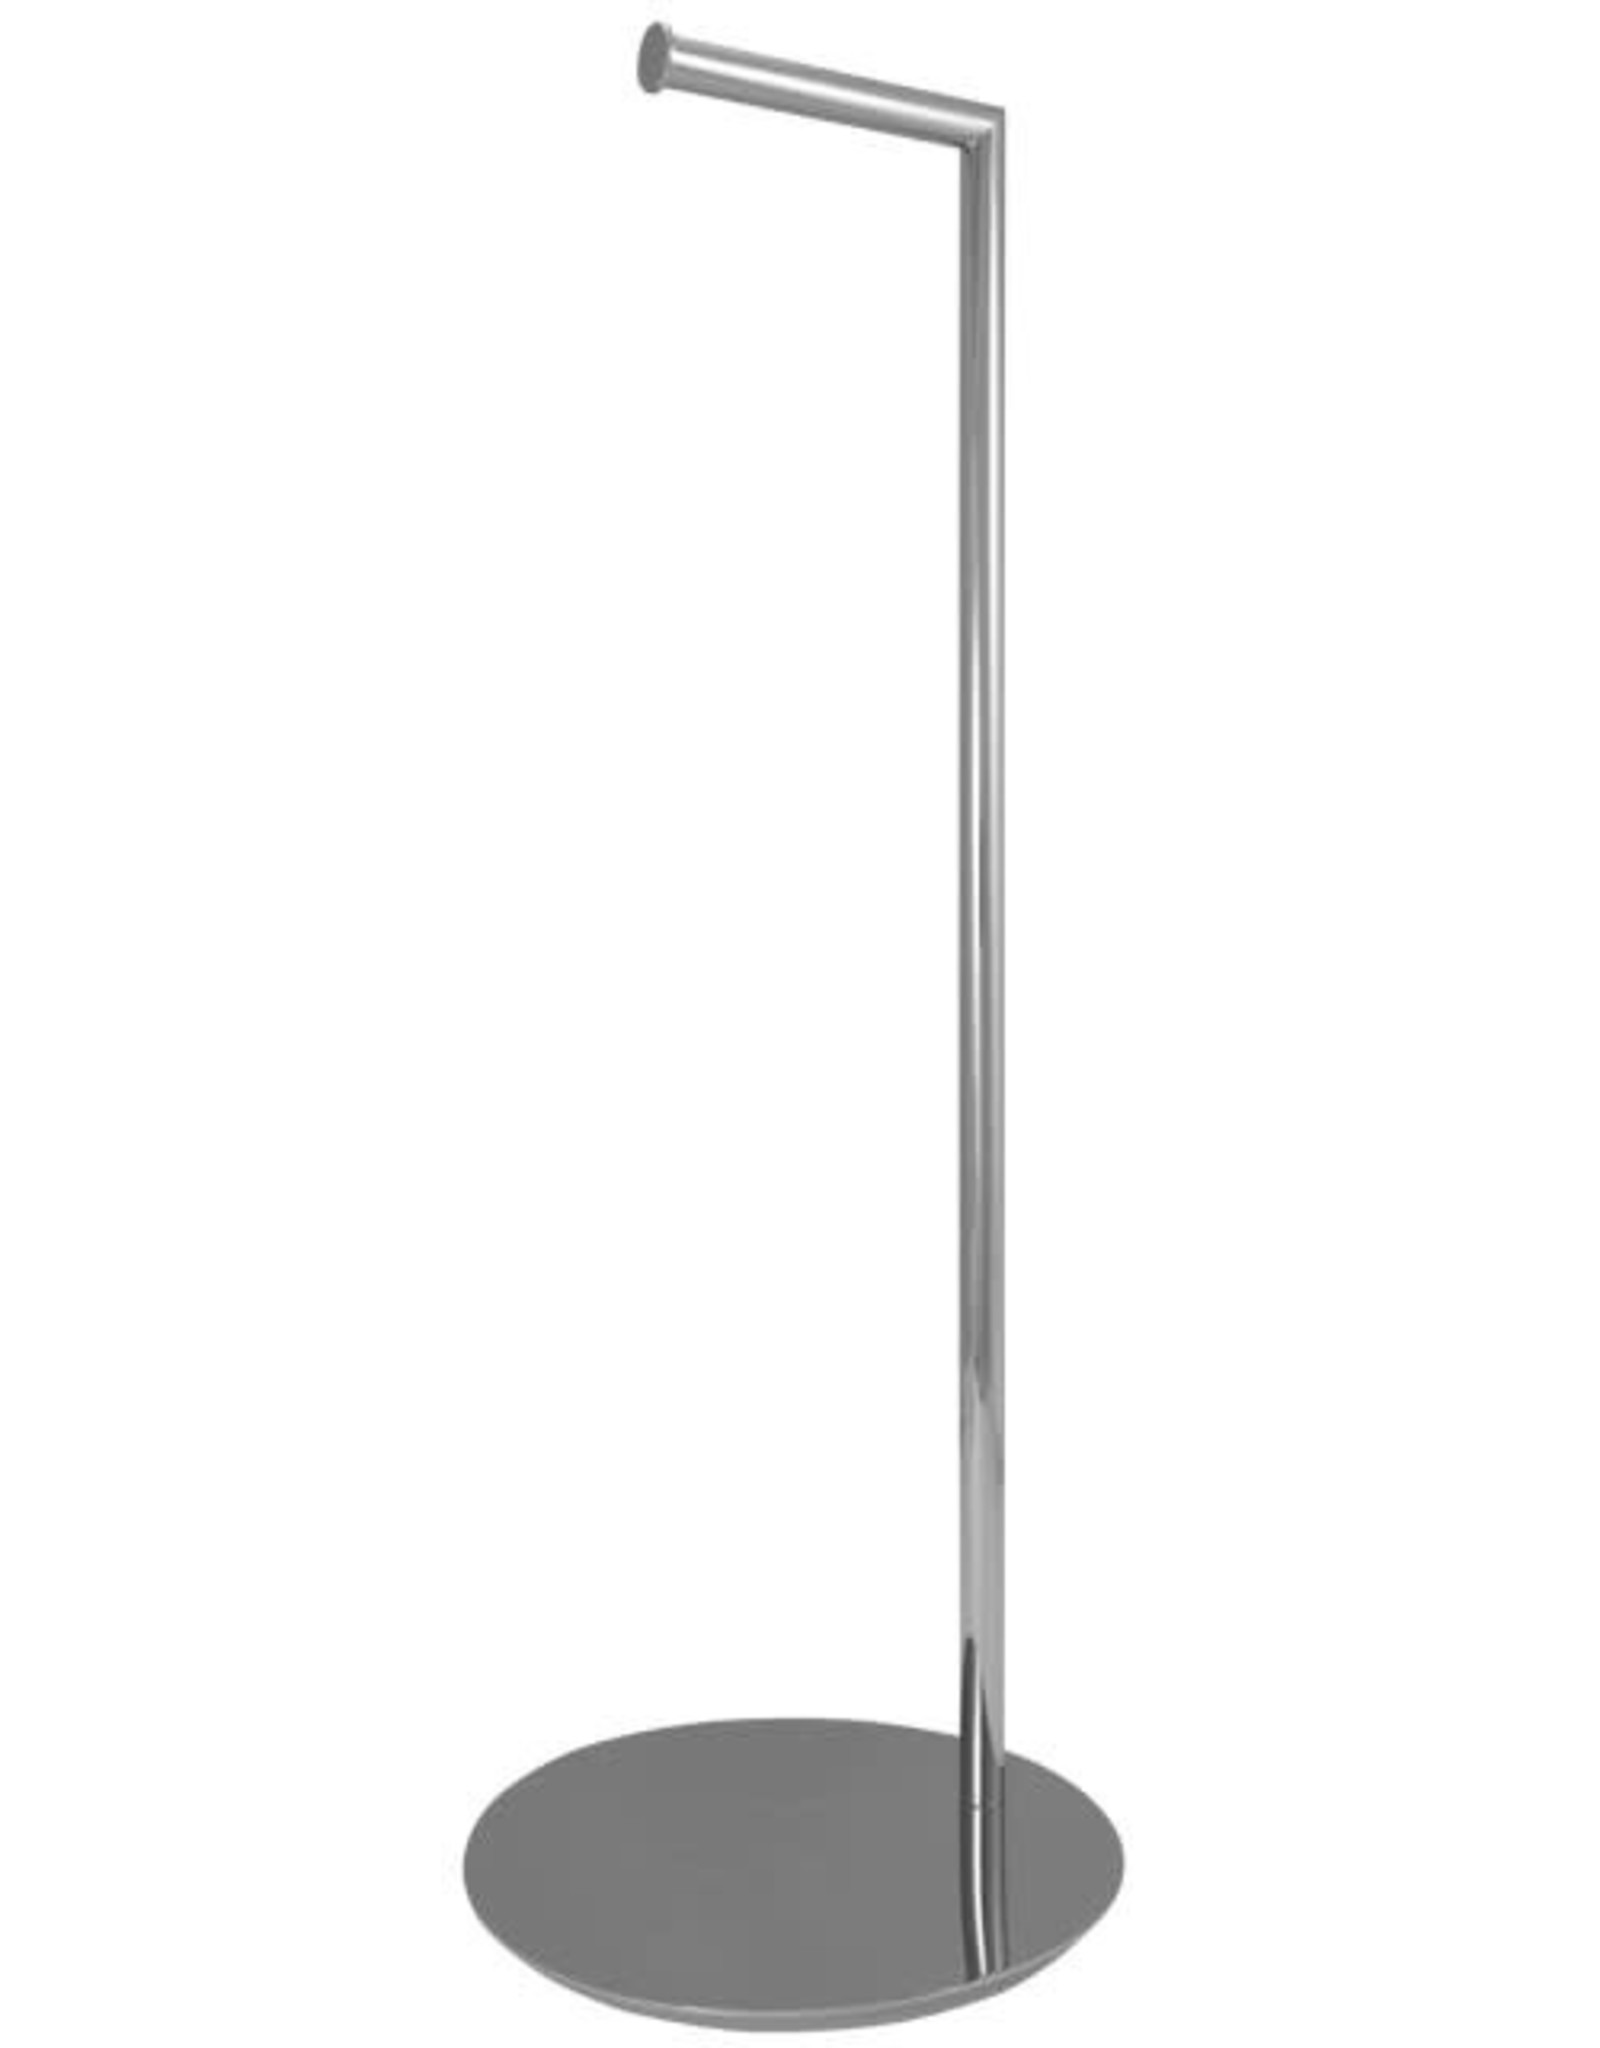 LalOO Laloo Floor Stand Paper Holder- Chrome